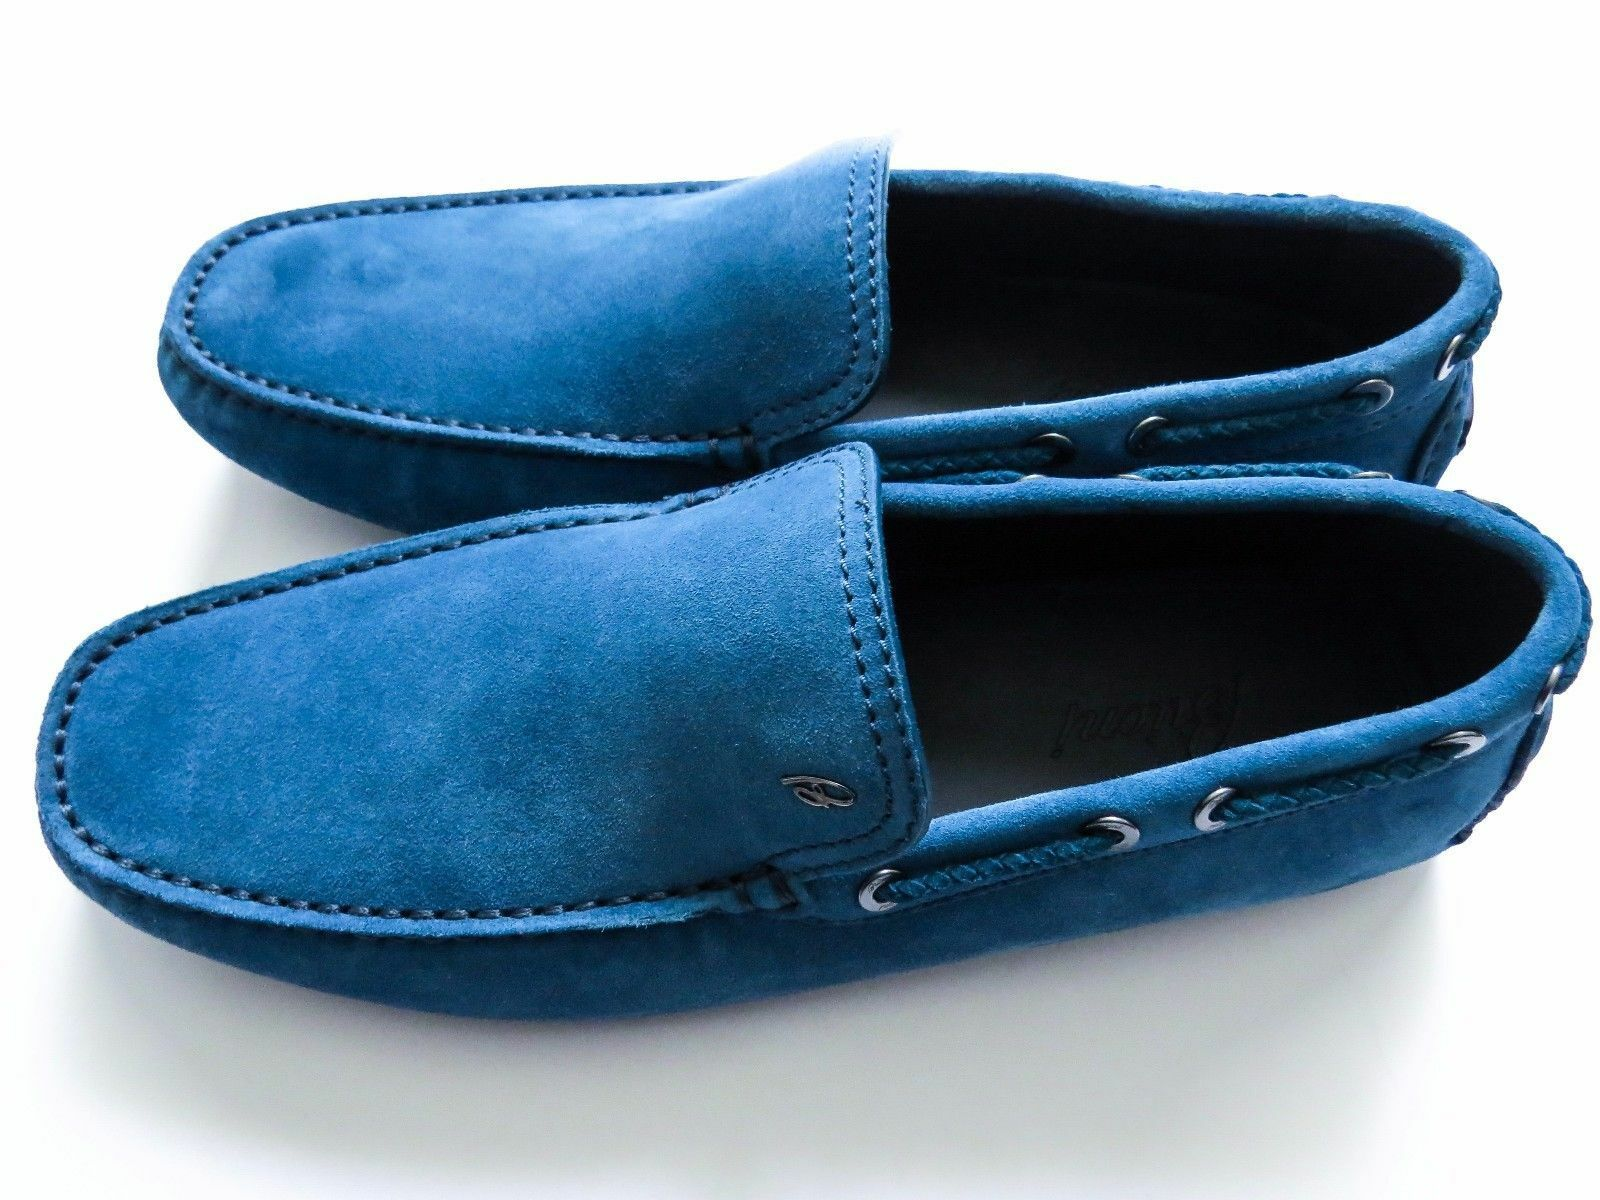 750 BRIONI Light bluee Suede shoes Loafers Moccasins 10.5 US 43.5 Euro 9.5 UK